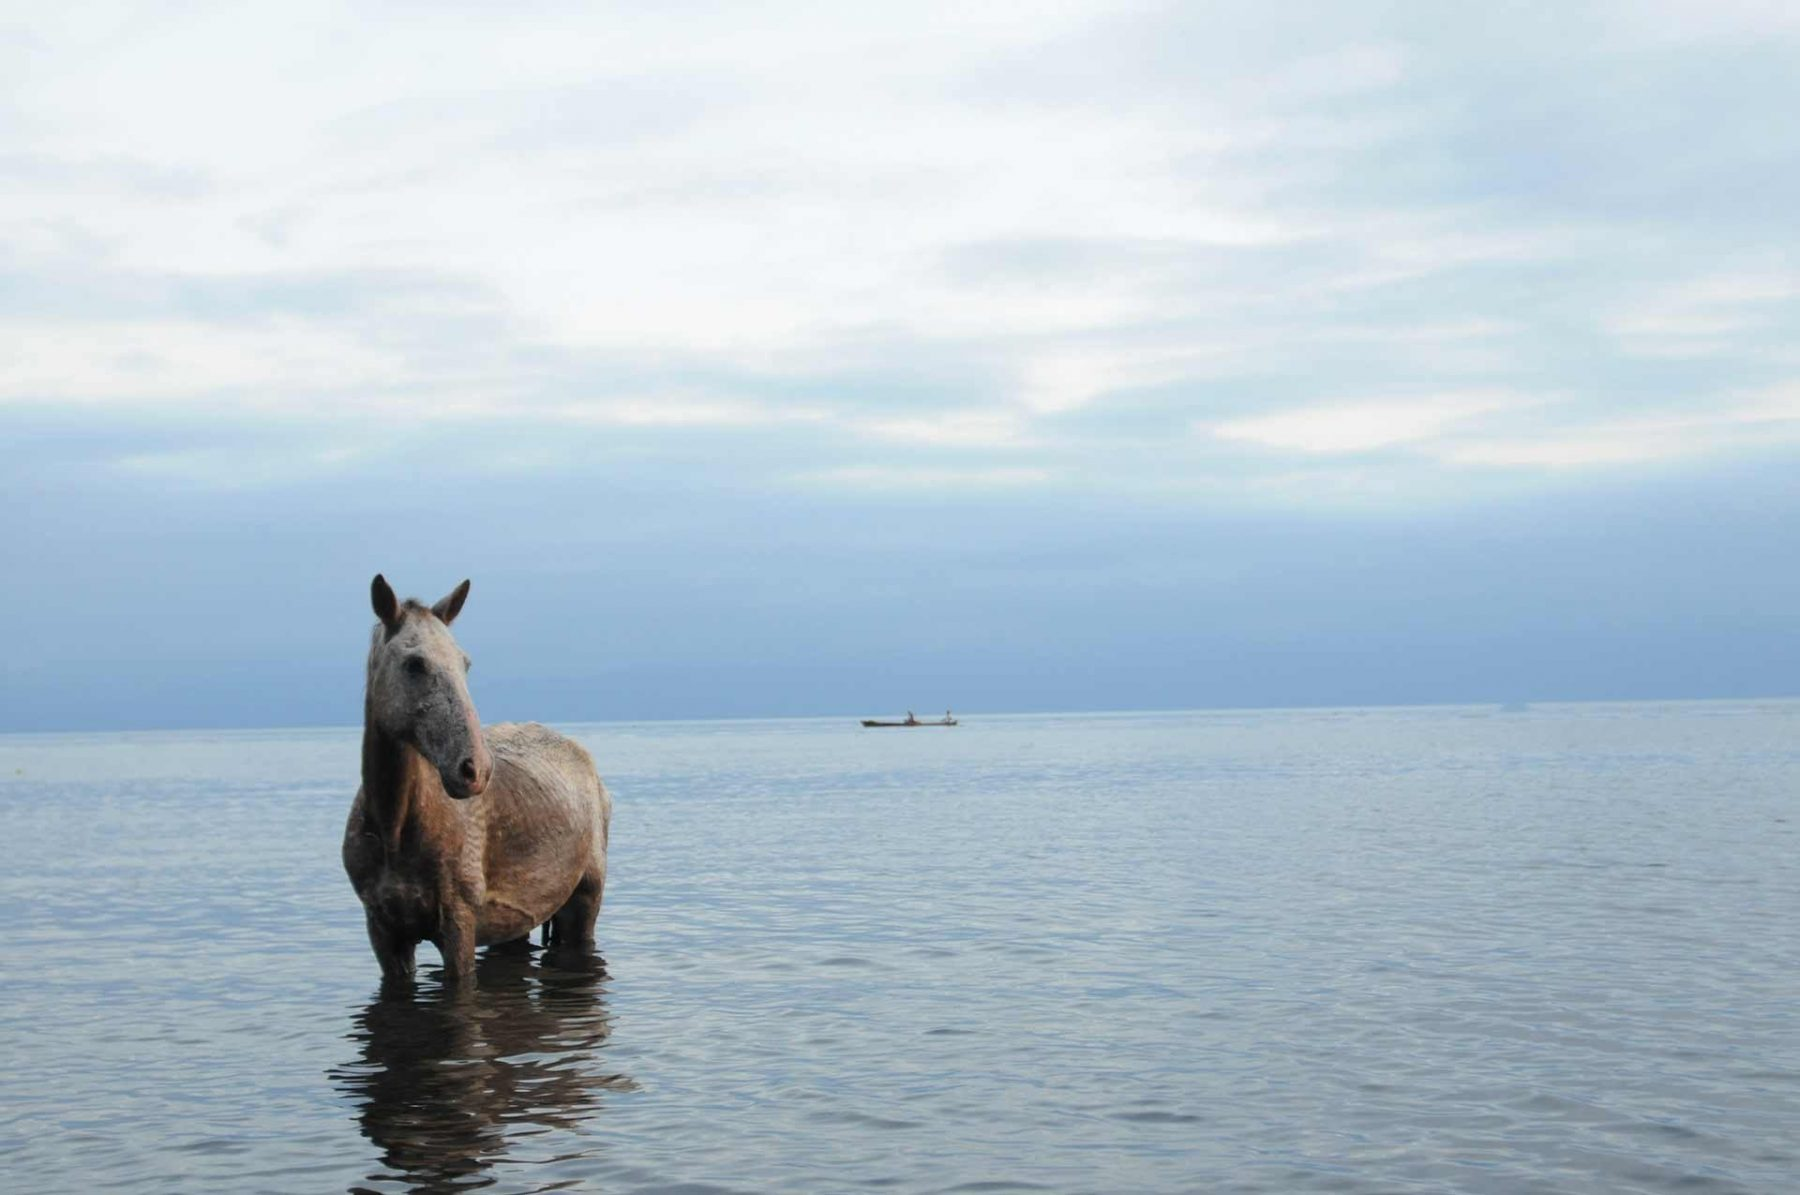 A horse cooling herself in the ocean. Guatemala.